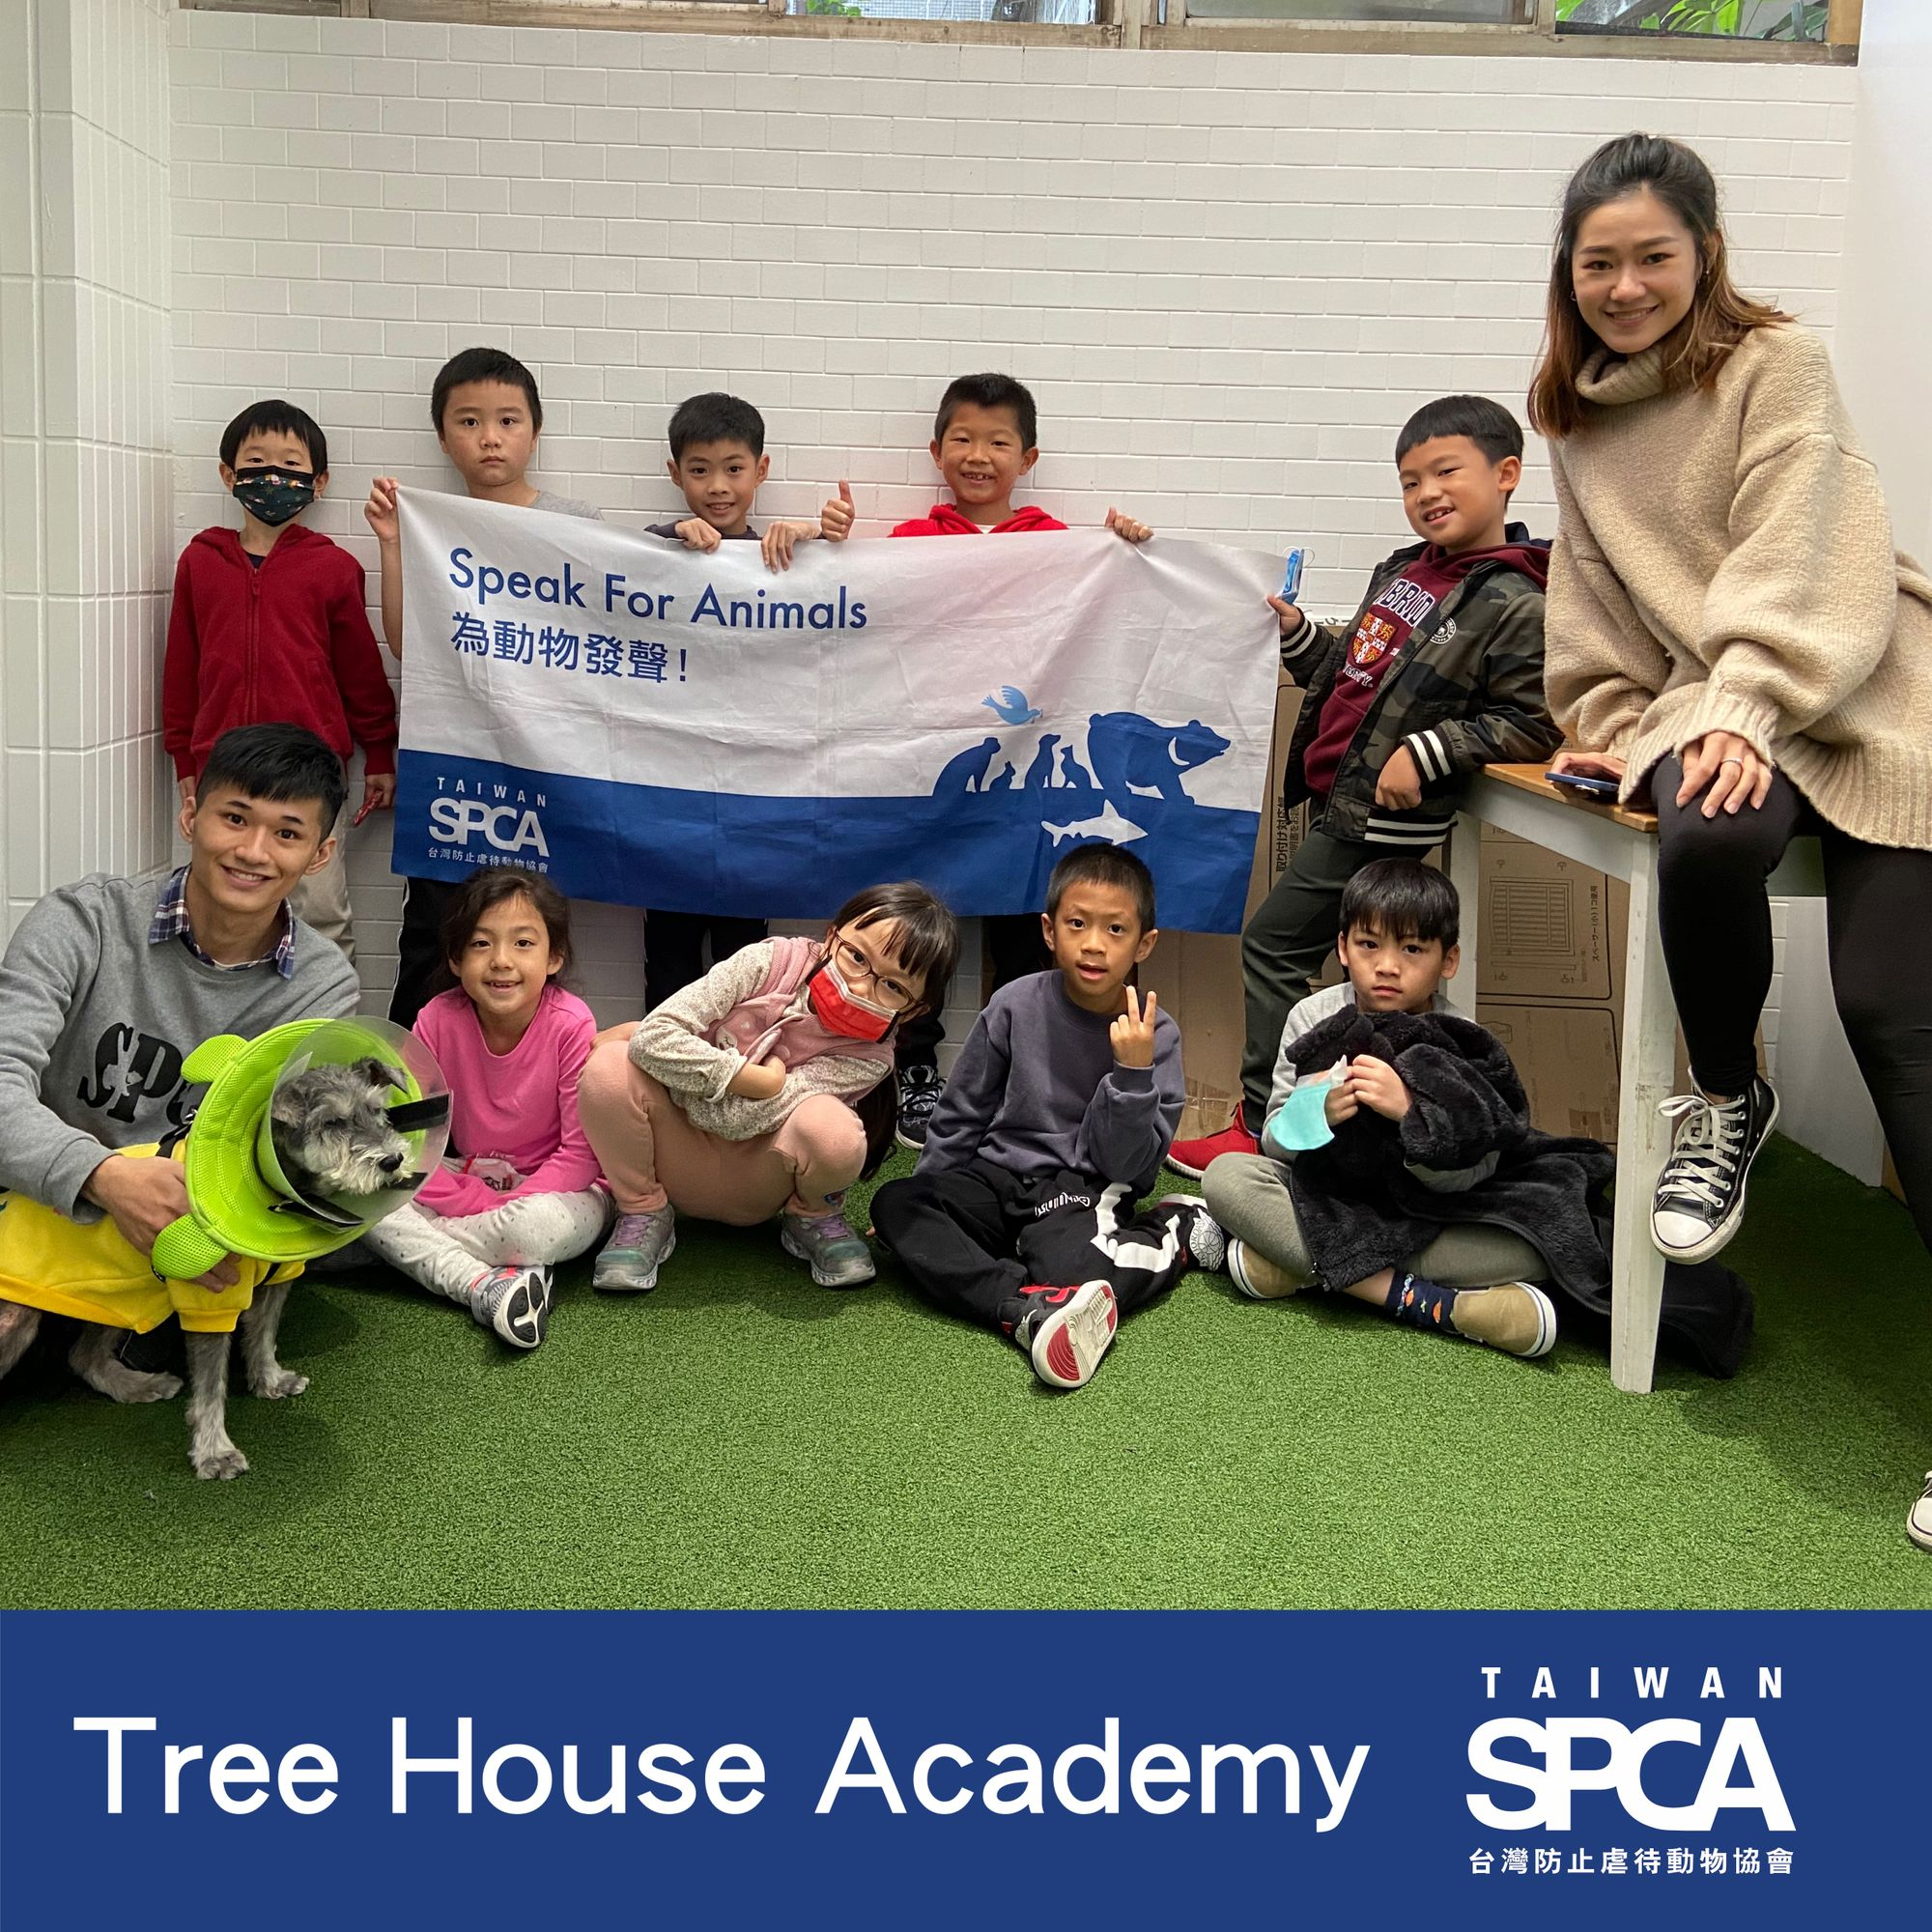 【Tree House Academy 動保講座】